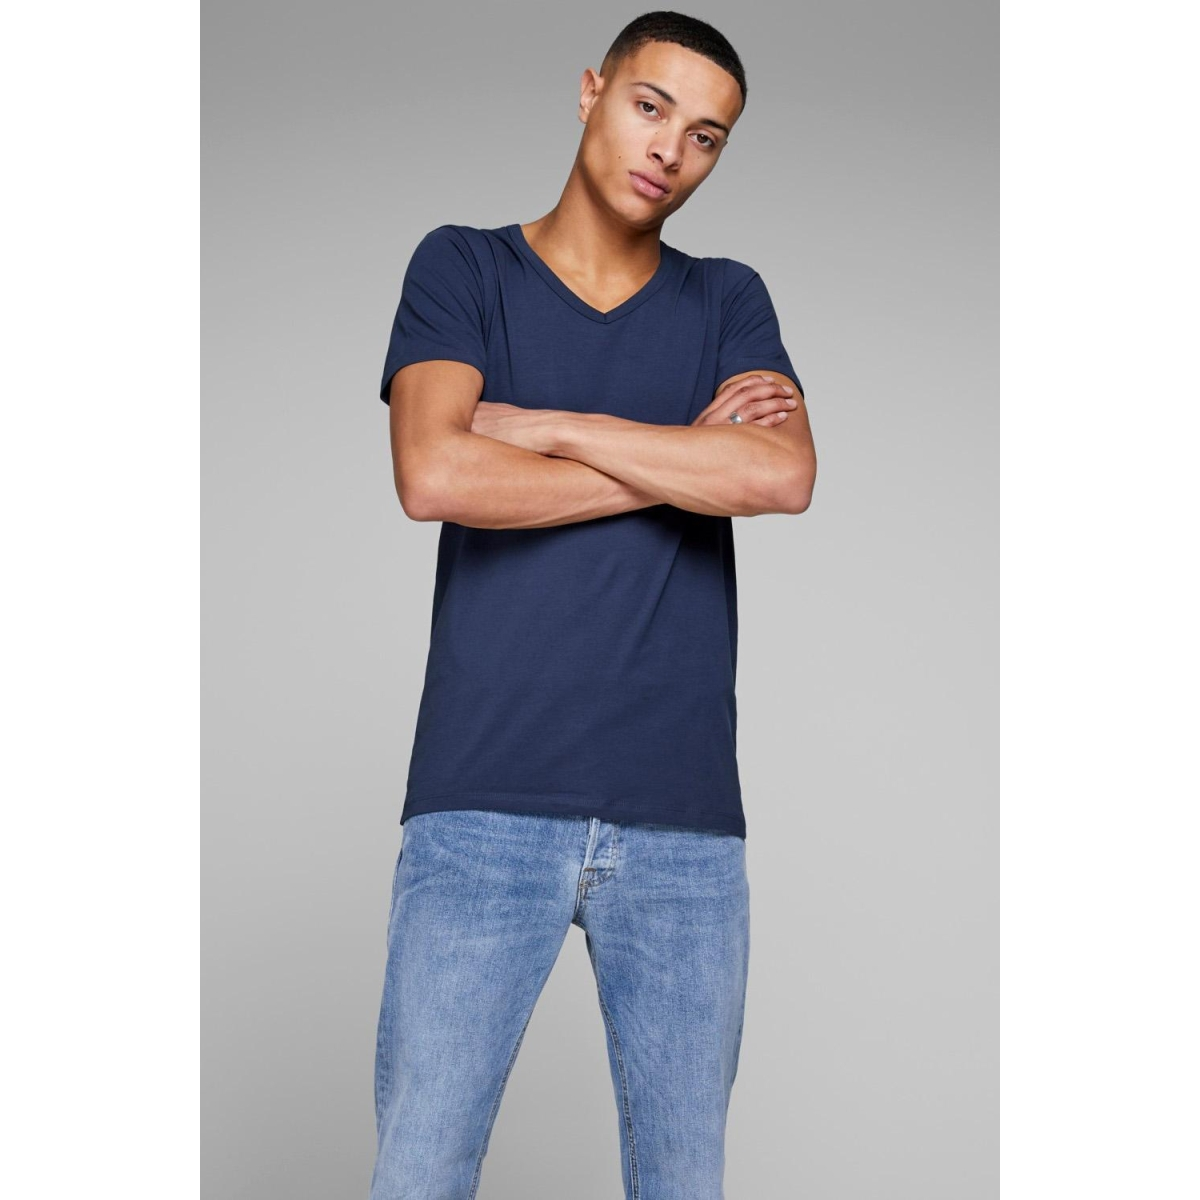 basic v-neck tee s/s 12059219 jack & jones t-shirt navy blue